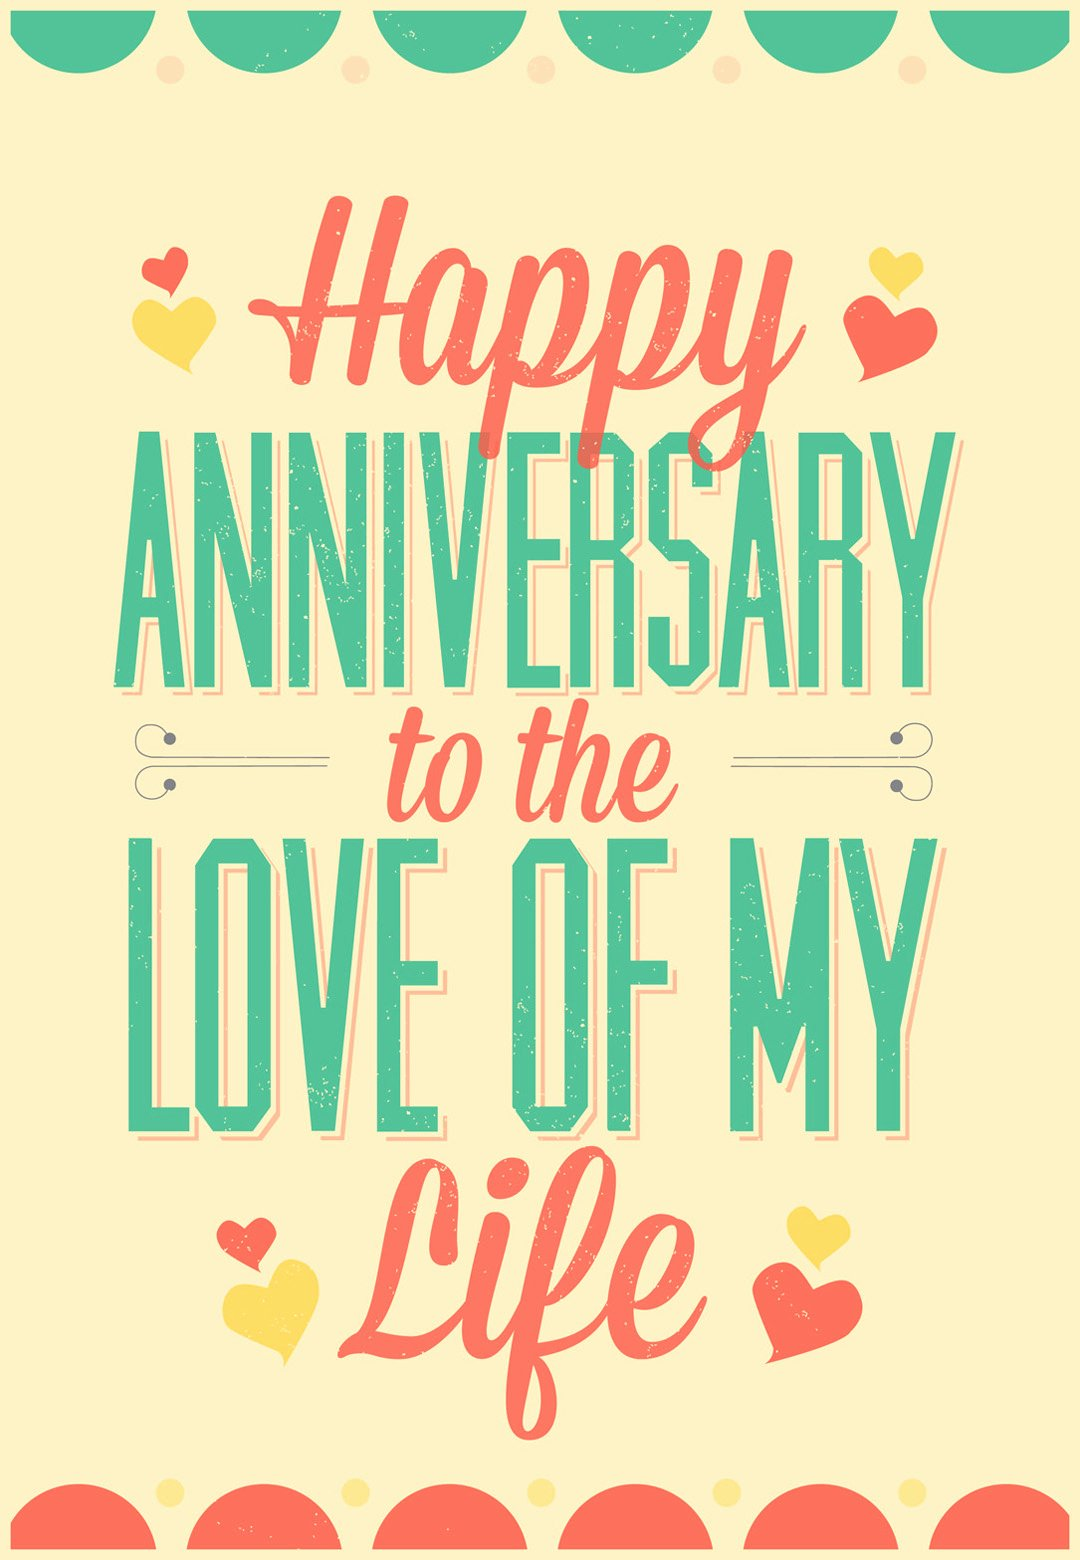 Printable Anniversary Cards Free Online Unique Love Of My Life Happy Anniversary Card Free